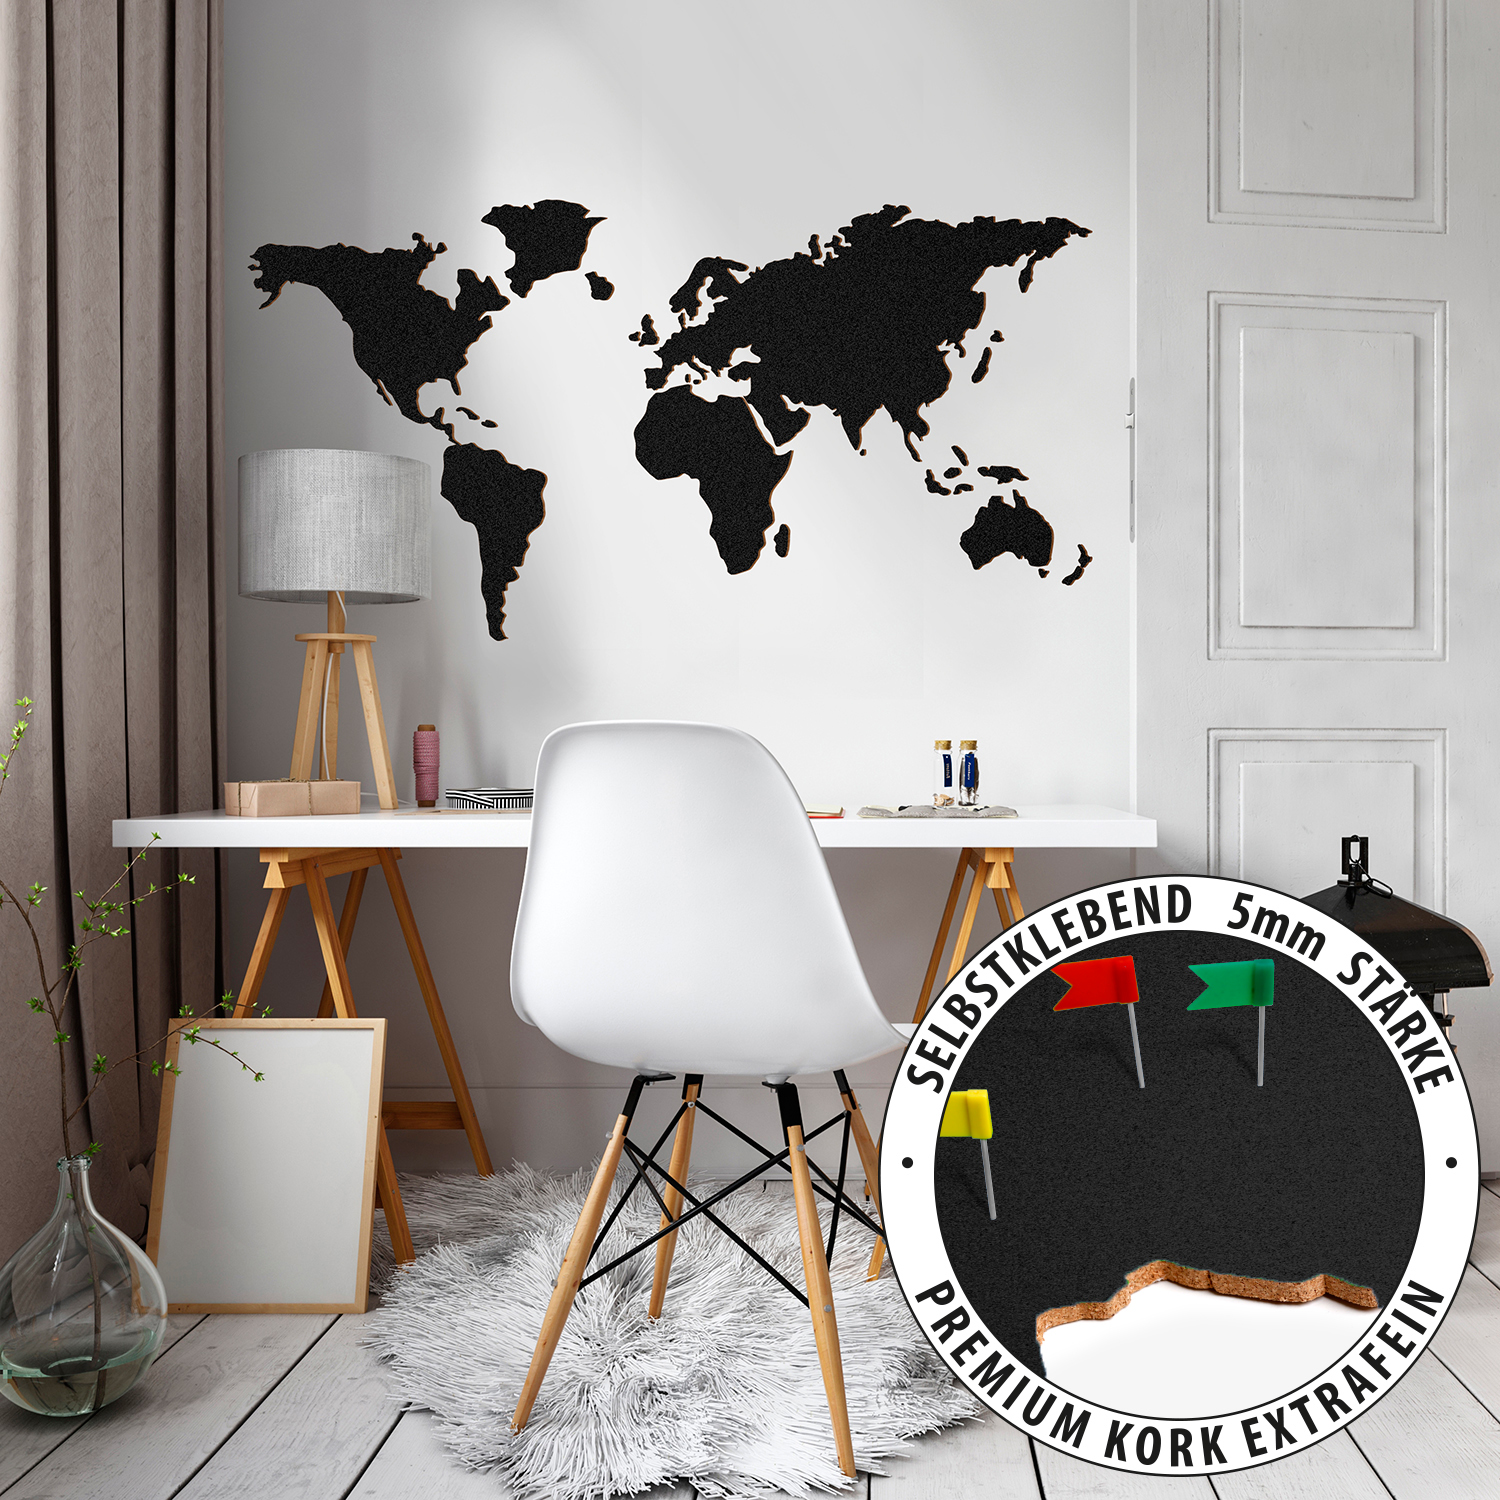 World map self adhesive cork board something multistick cork world map self adhesive cork board something multistick gumiabroncs Images